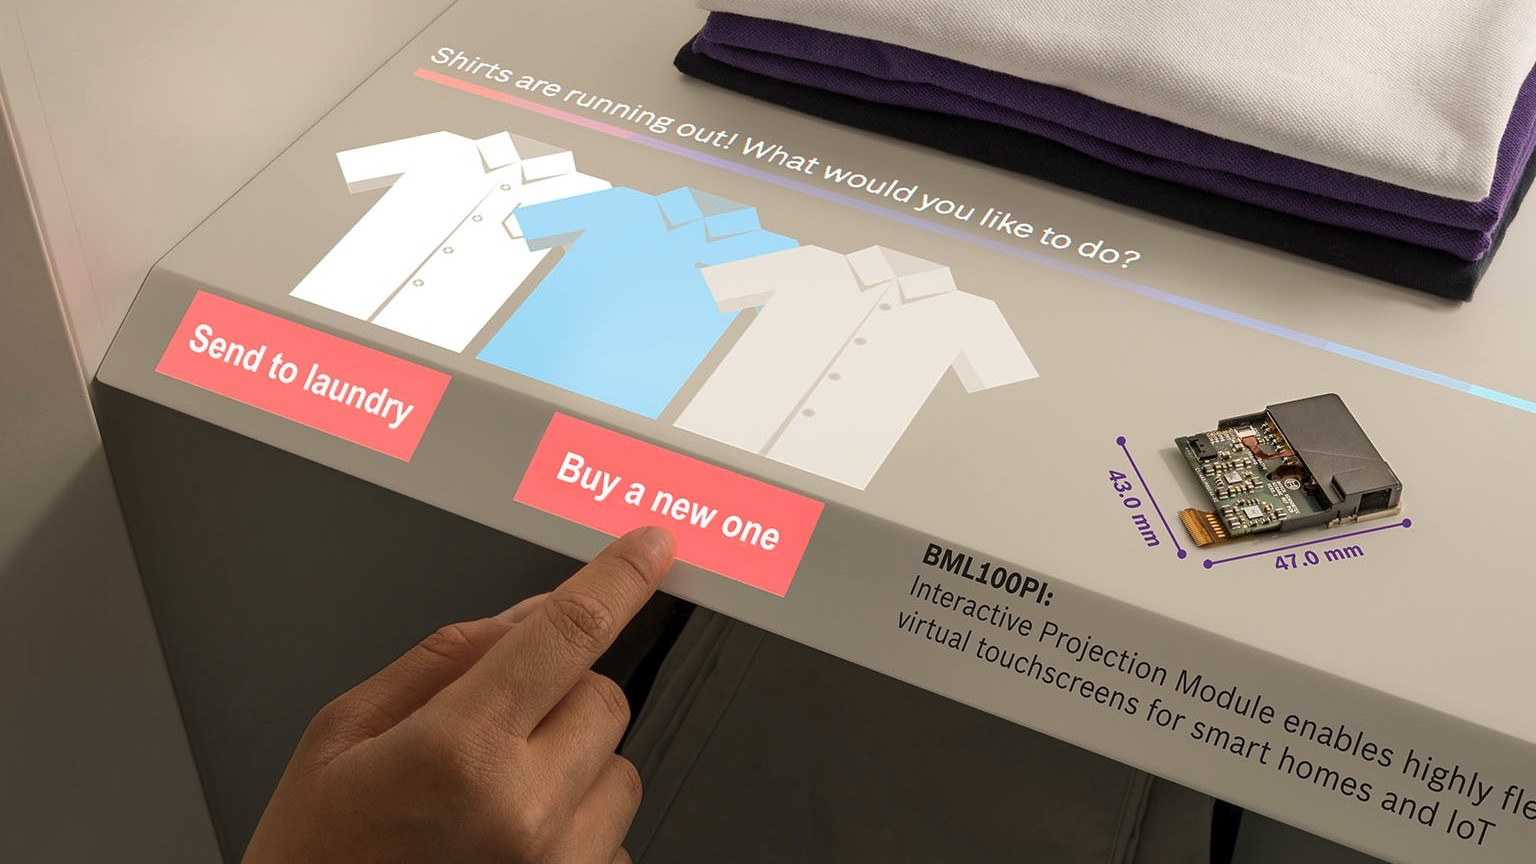 Bosch announces virtual touchscreen on every surface for smart homes and IoT